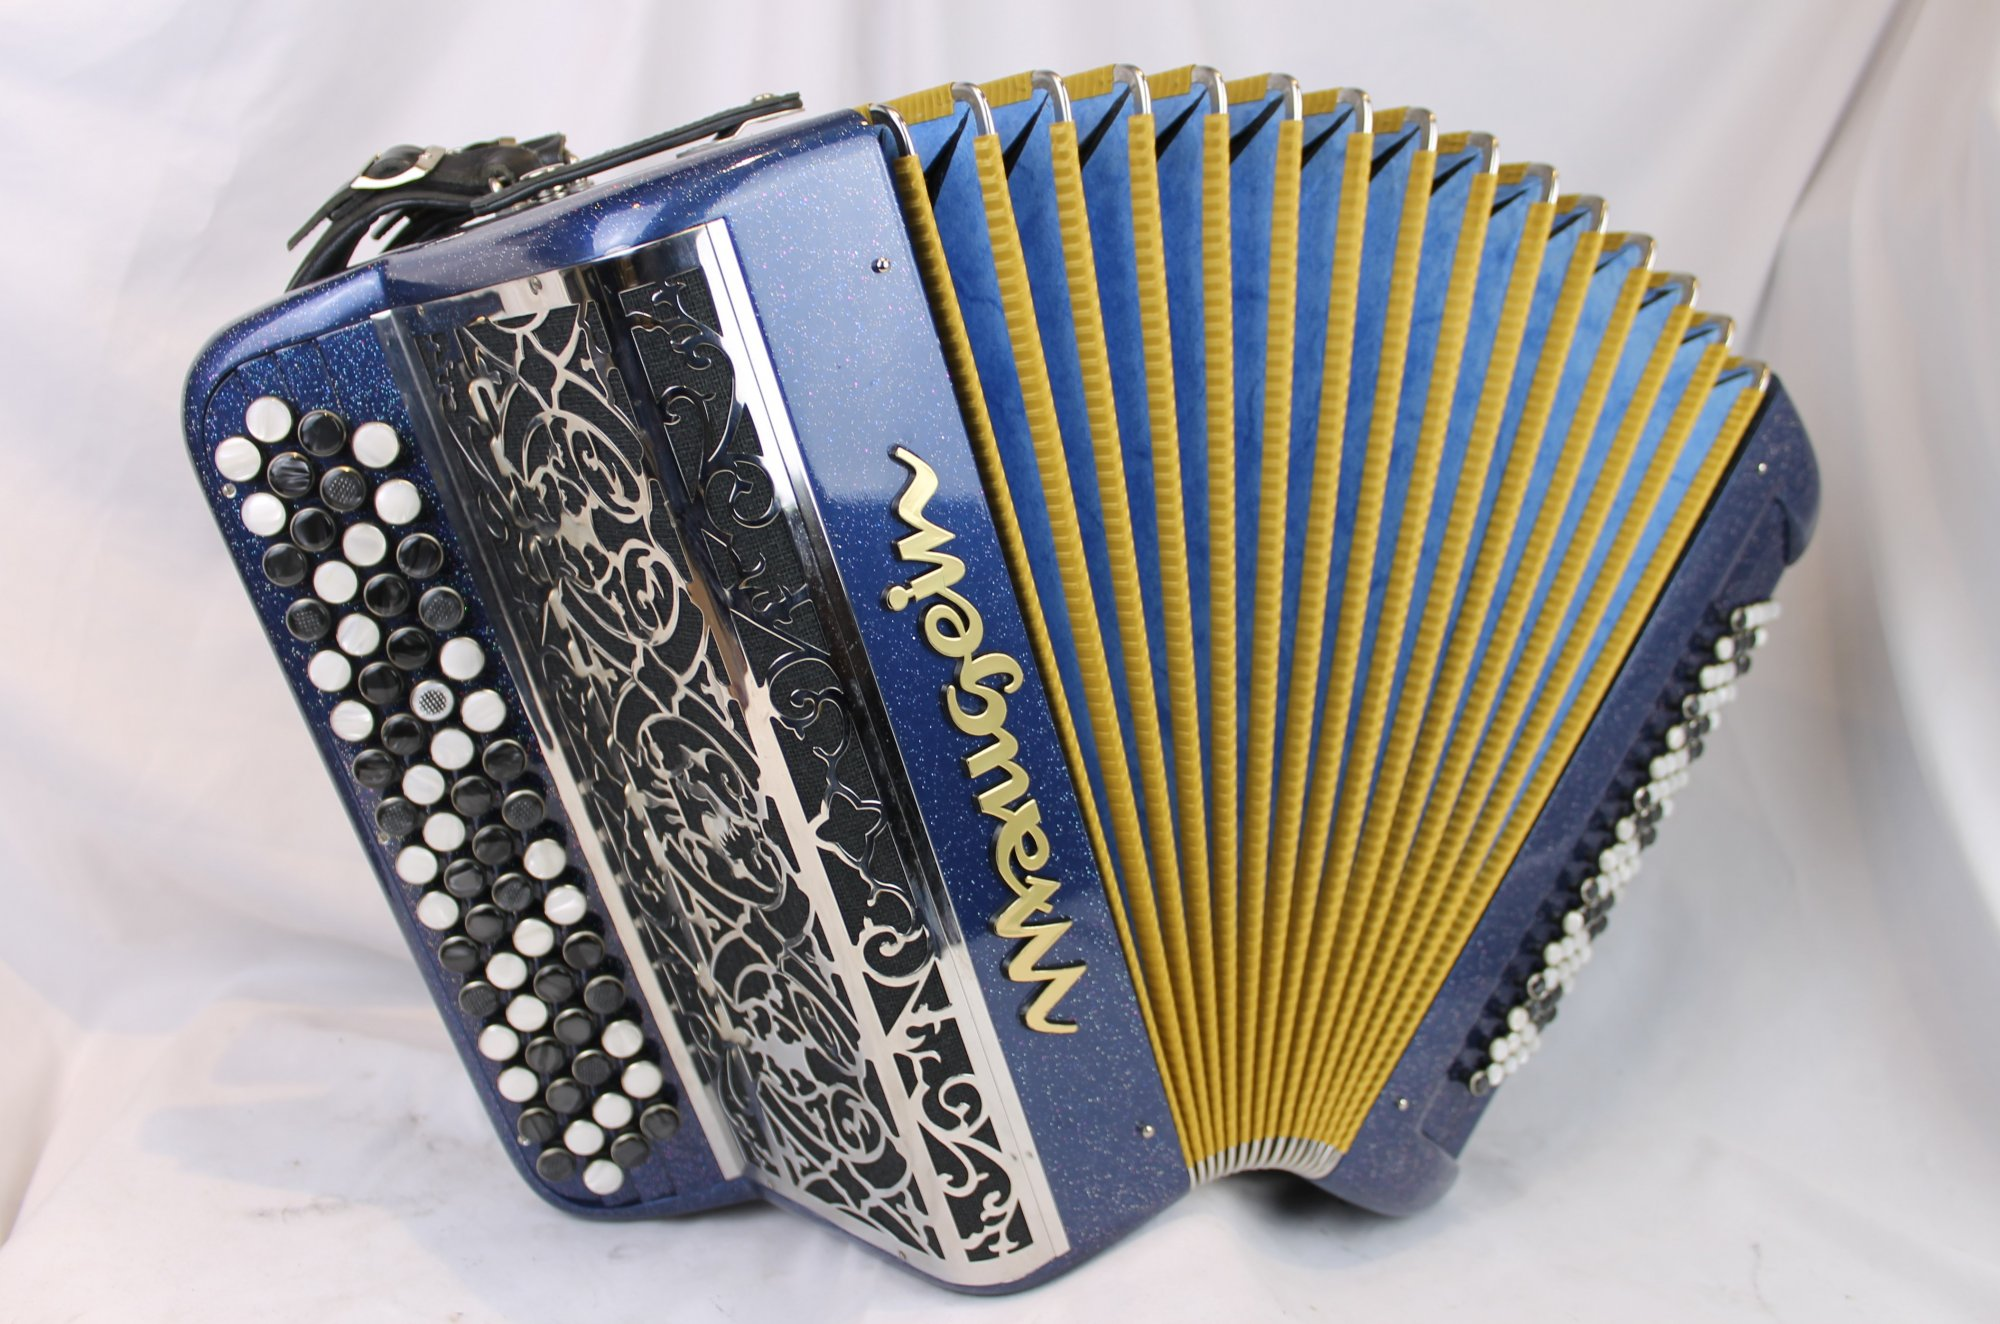 3994 - Blue Sparkle Maugein French C System Chromatic Button Accordion MM 64 80